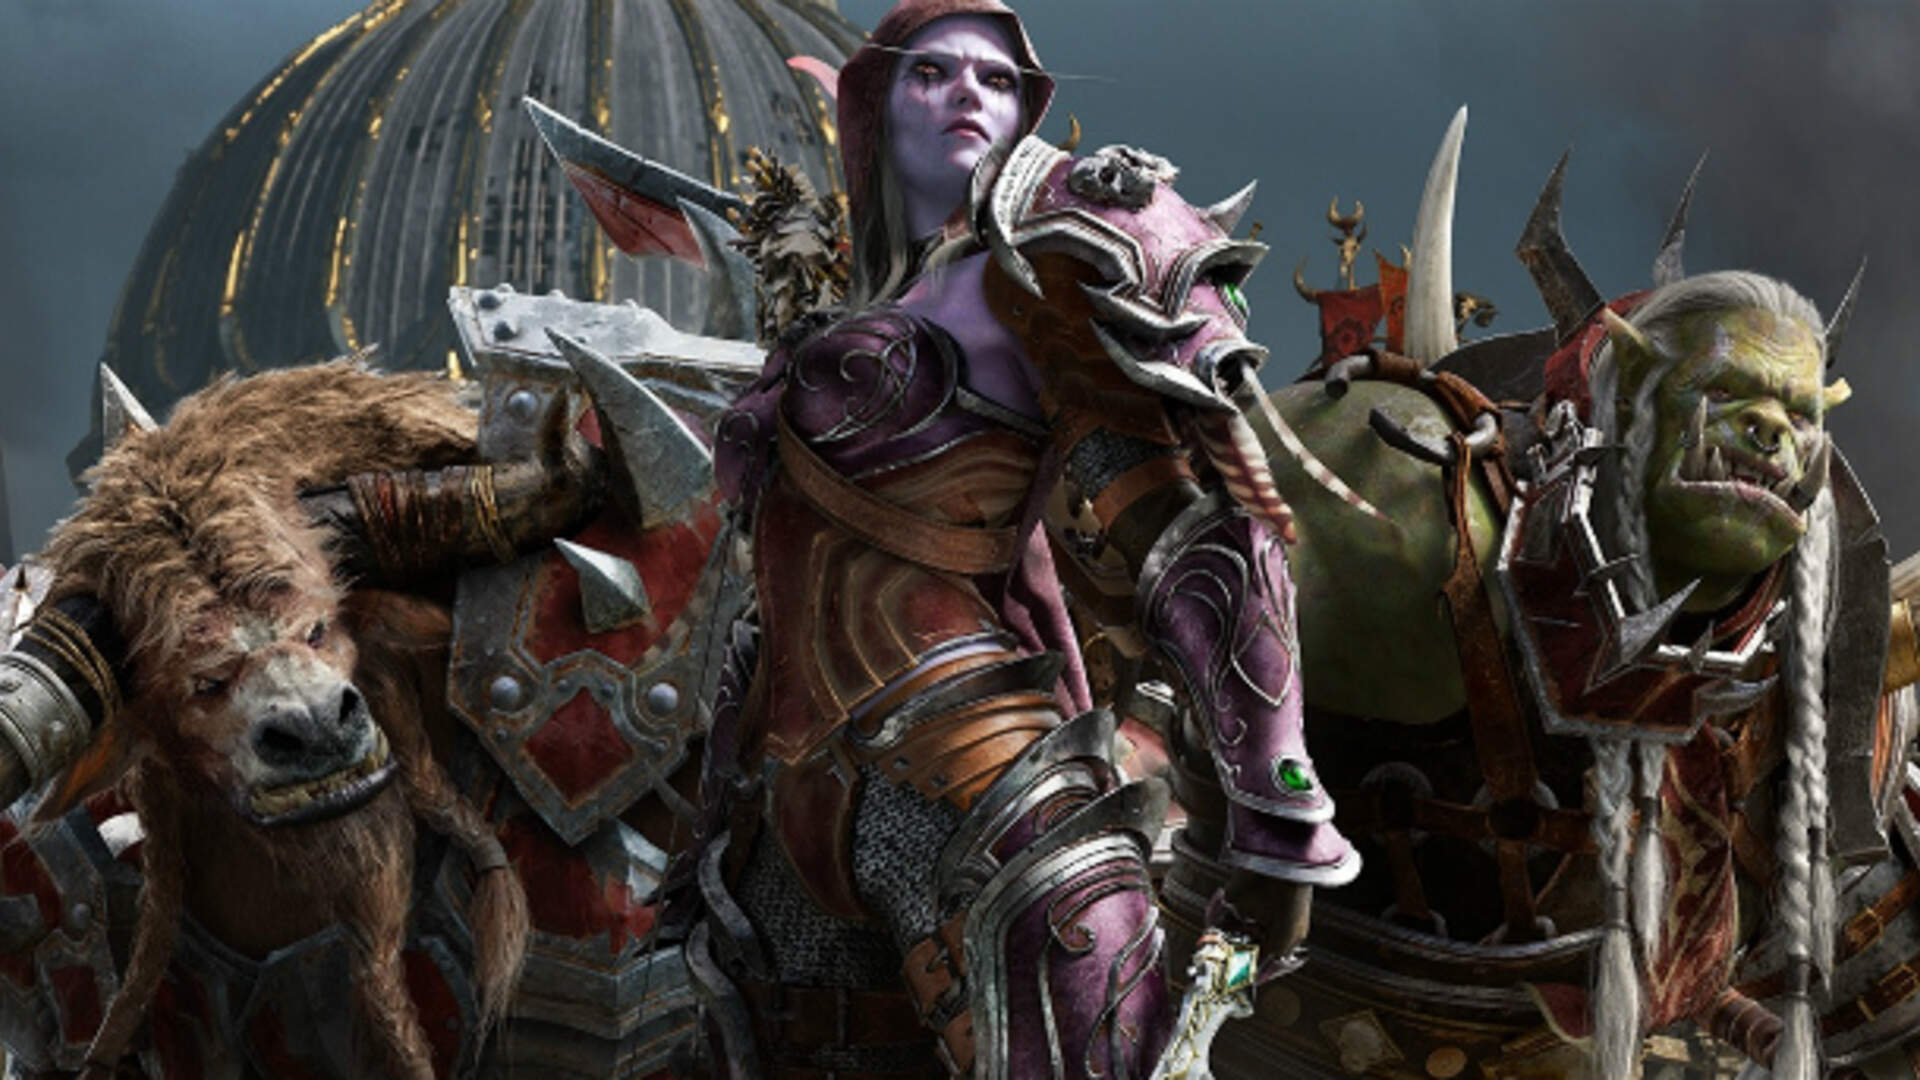 World of Warcraft Subscription Now Gives You Access to Base Game and Previous Expansions